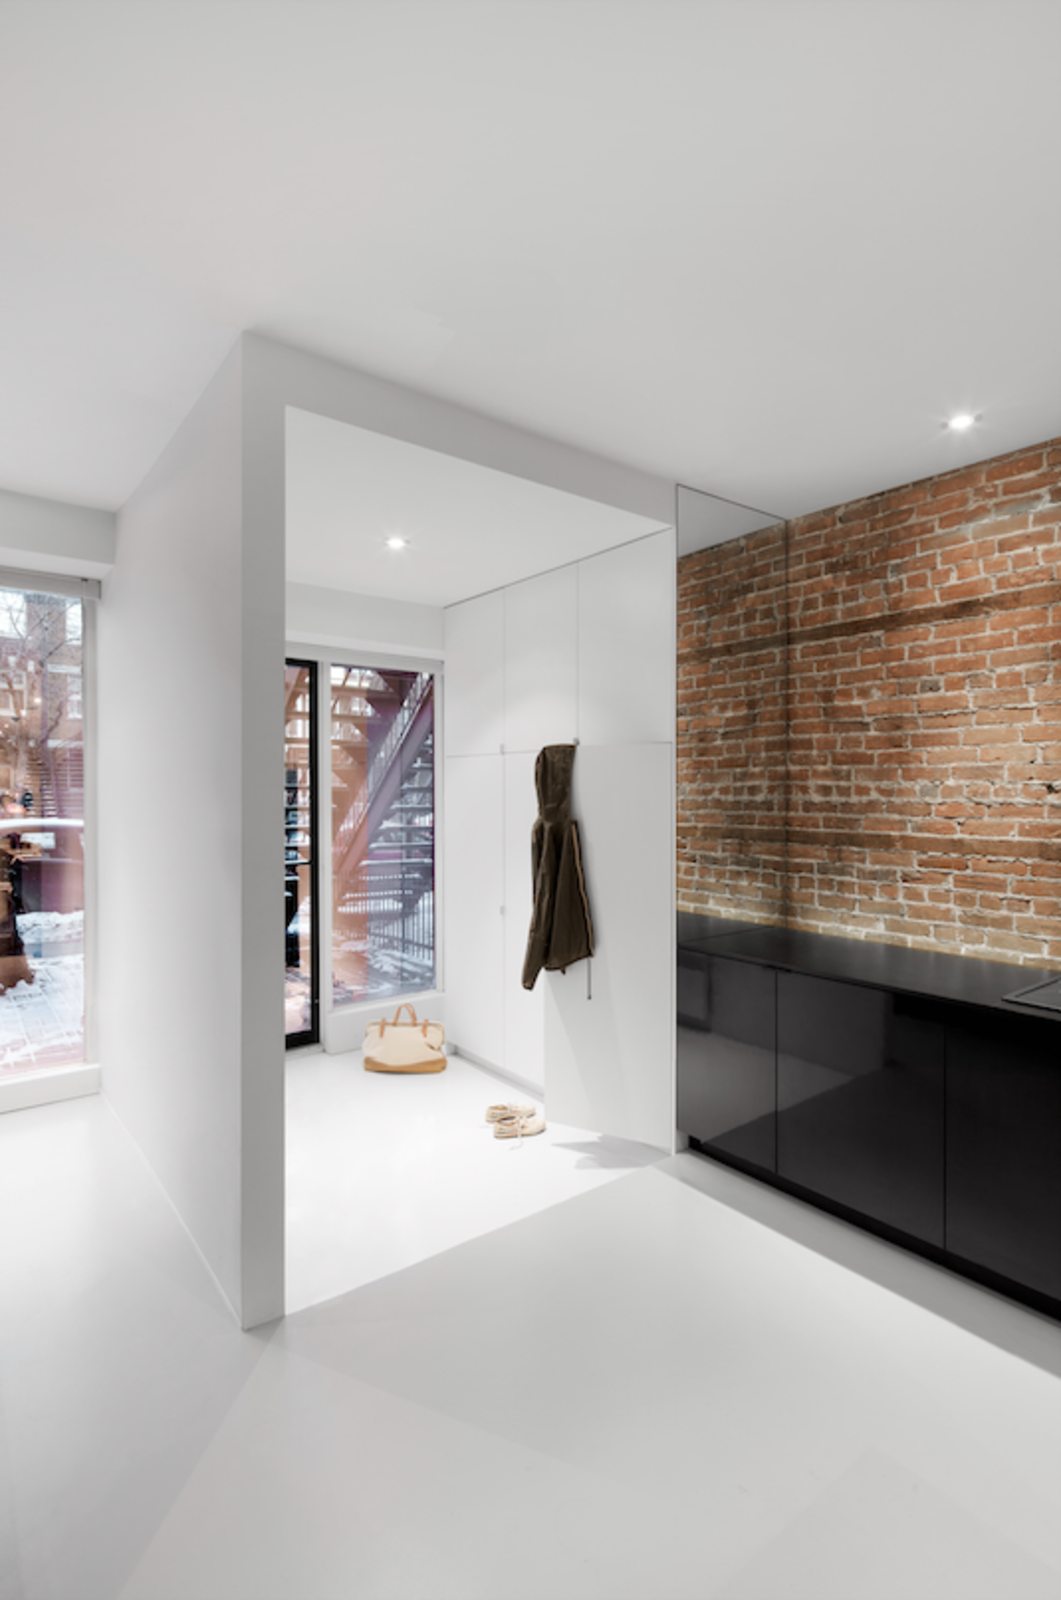 The semi-closed entryway contains a white cabinet for storing coats and scarves. The LED ceiling lights are from Contrast Lighting. Tagged: Hallway.  Photo 4 of 11 in 10 Fantastically Sleek Foyer Designs from A Futuristic Apartment with a Glass-Enclosed Bedroom